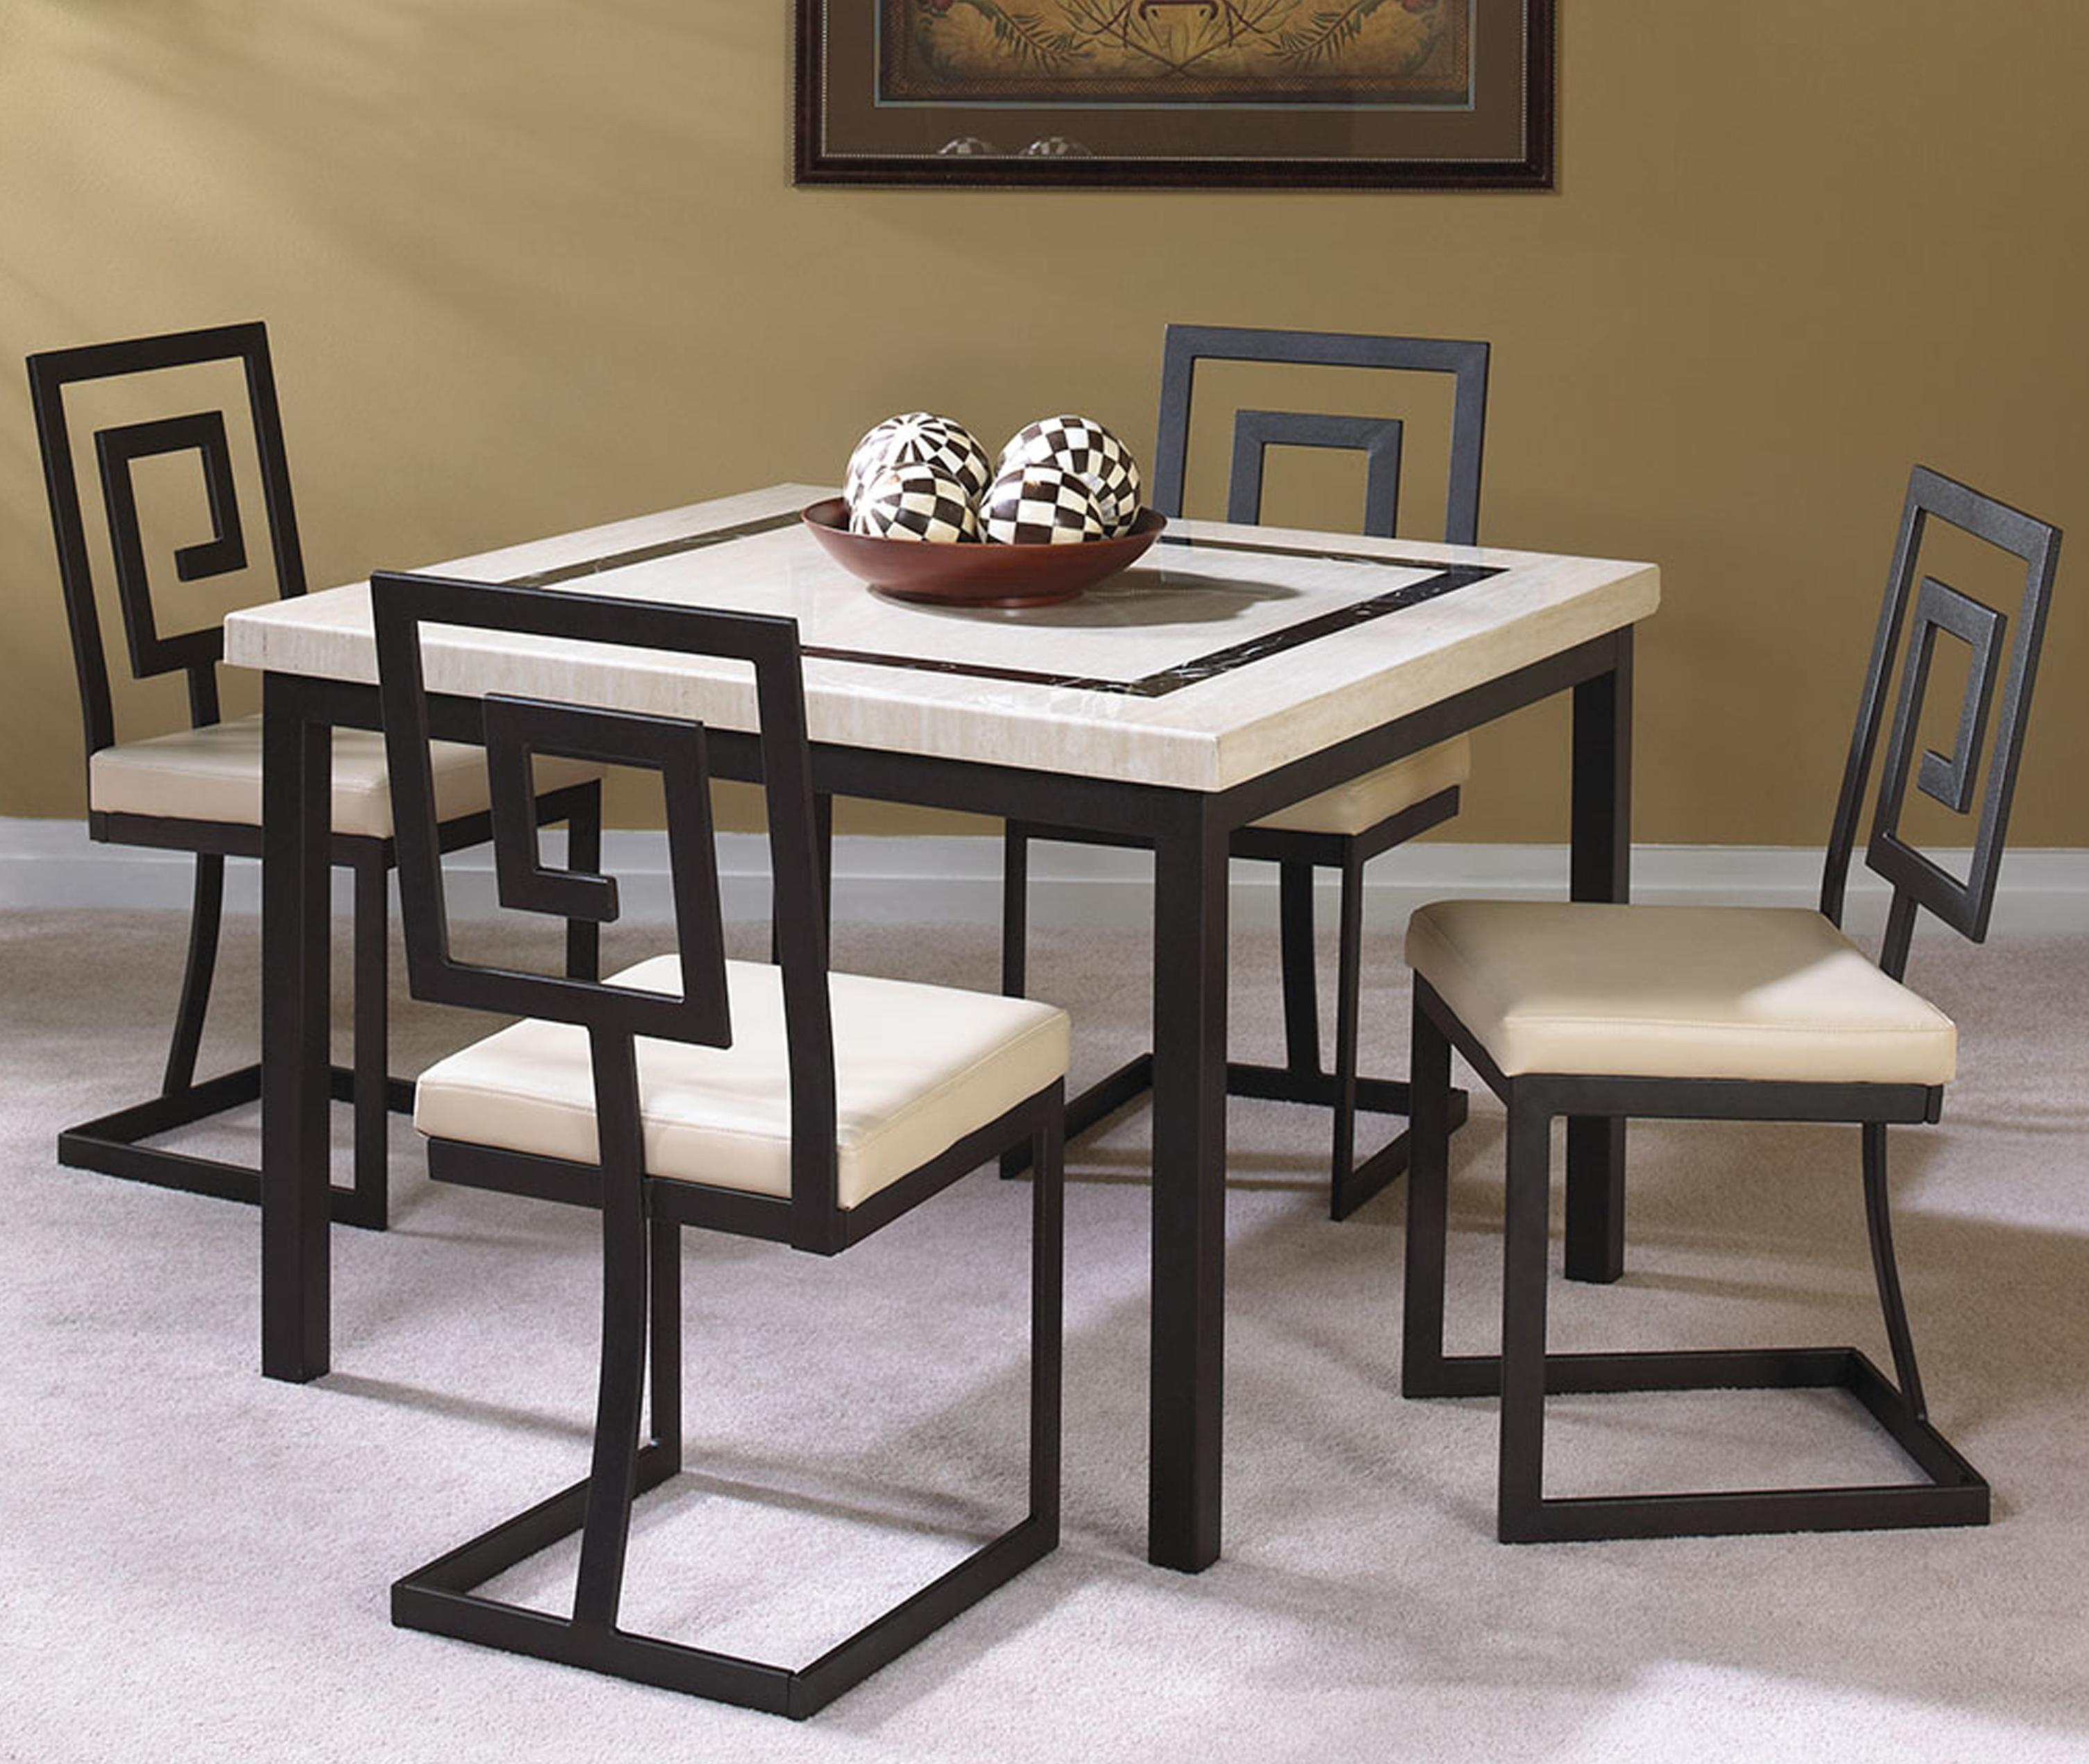 5 Piece Dining Sets cramco, inc maze 5 piece square table and side chair set - value